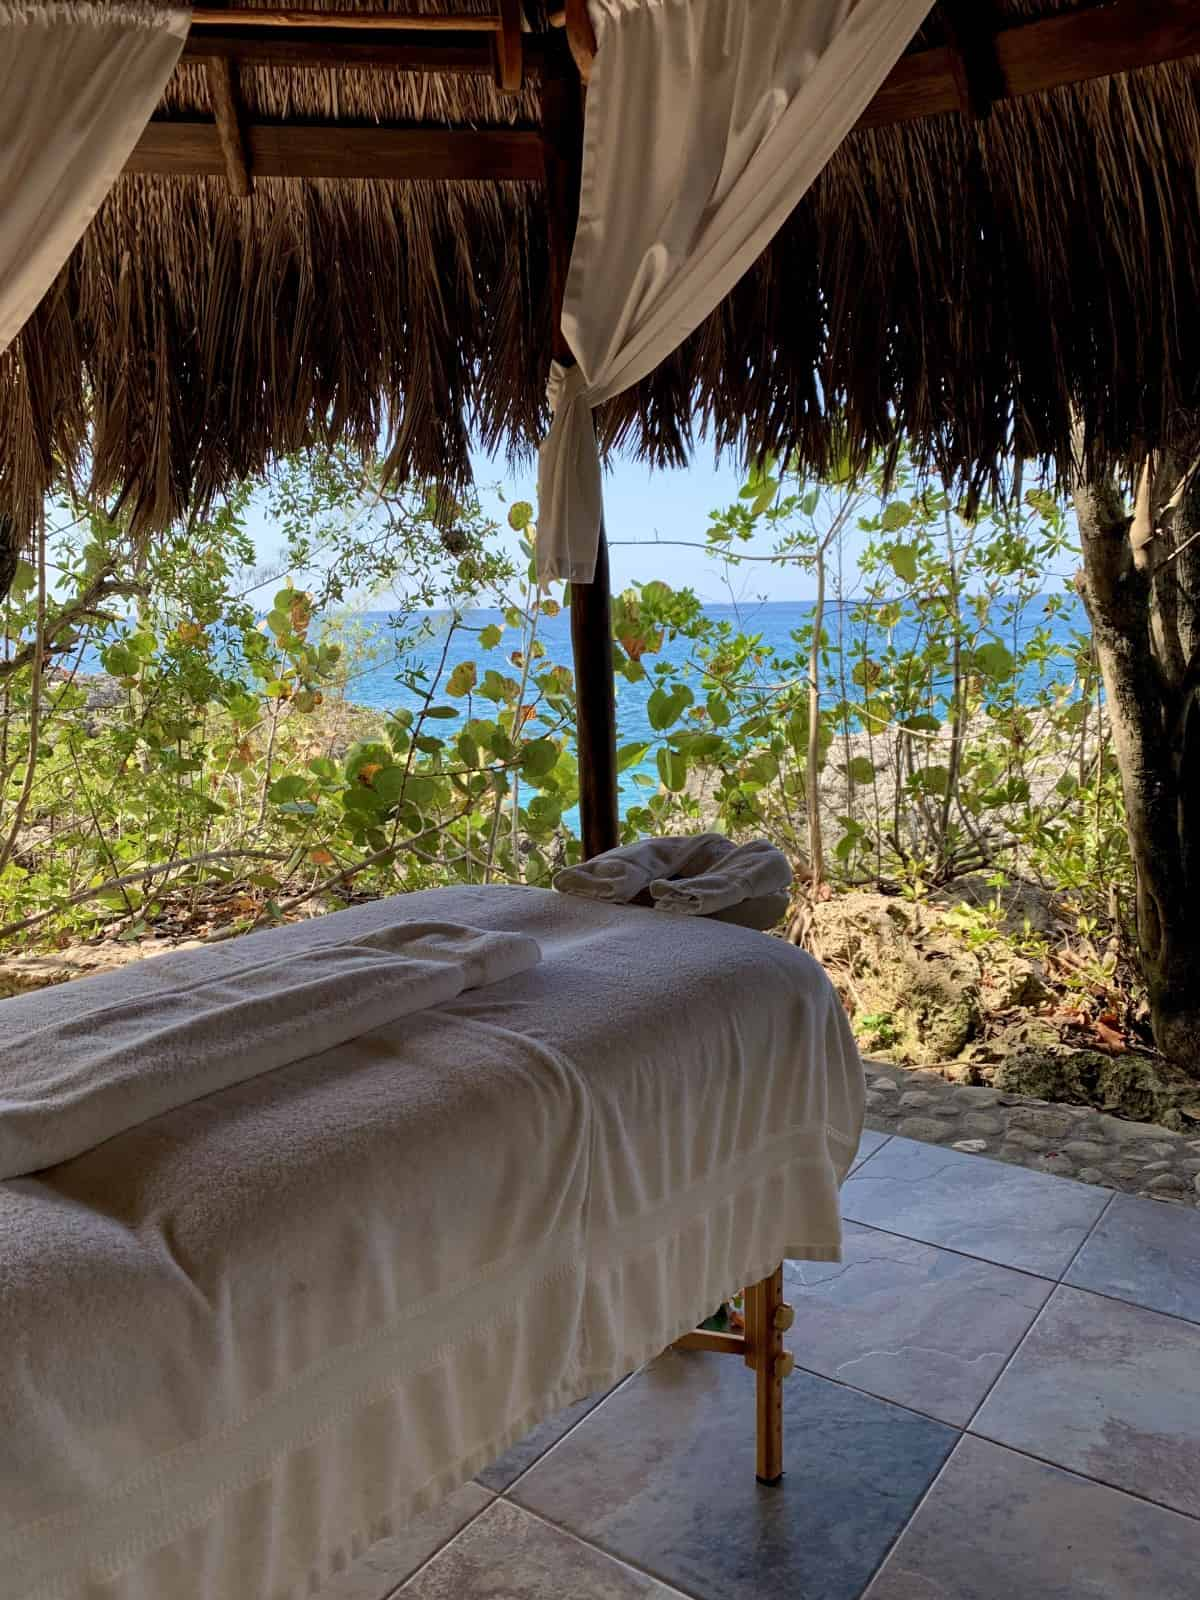 What to do in Negril - get a massage